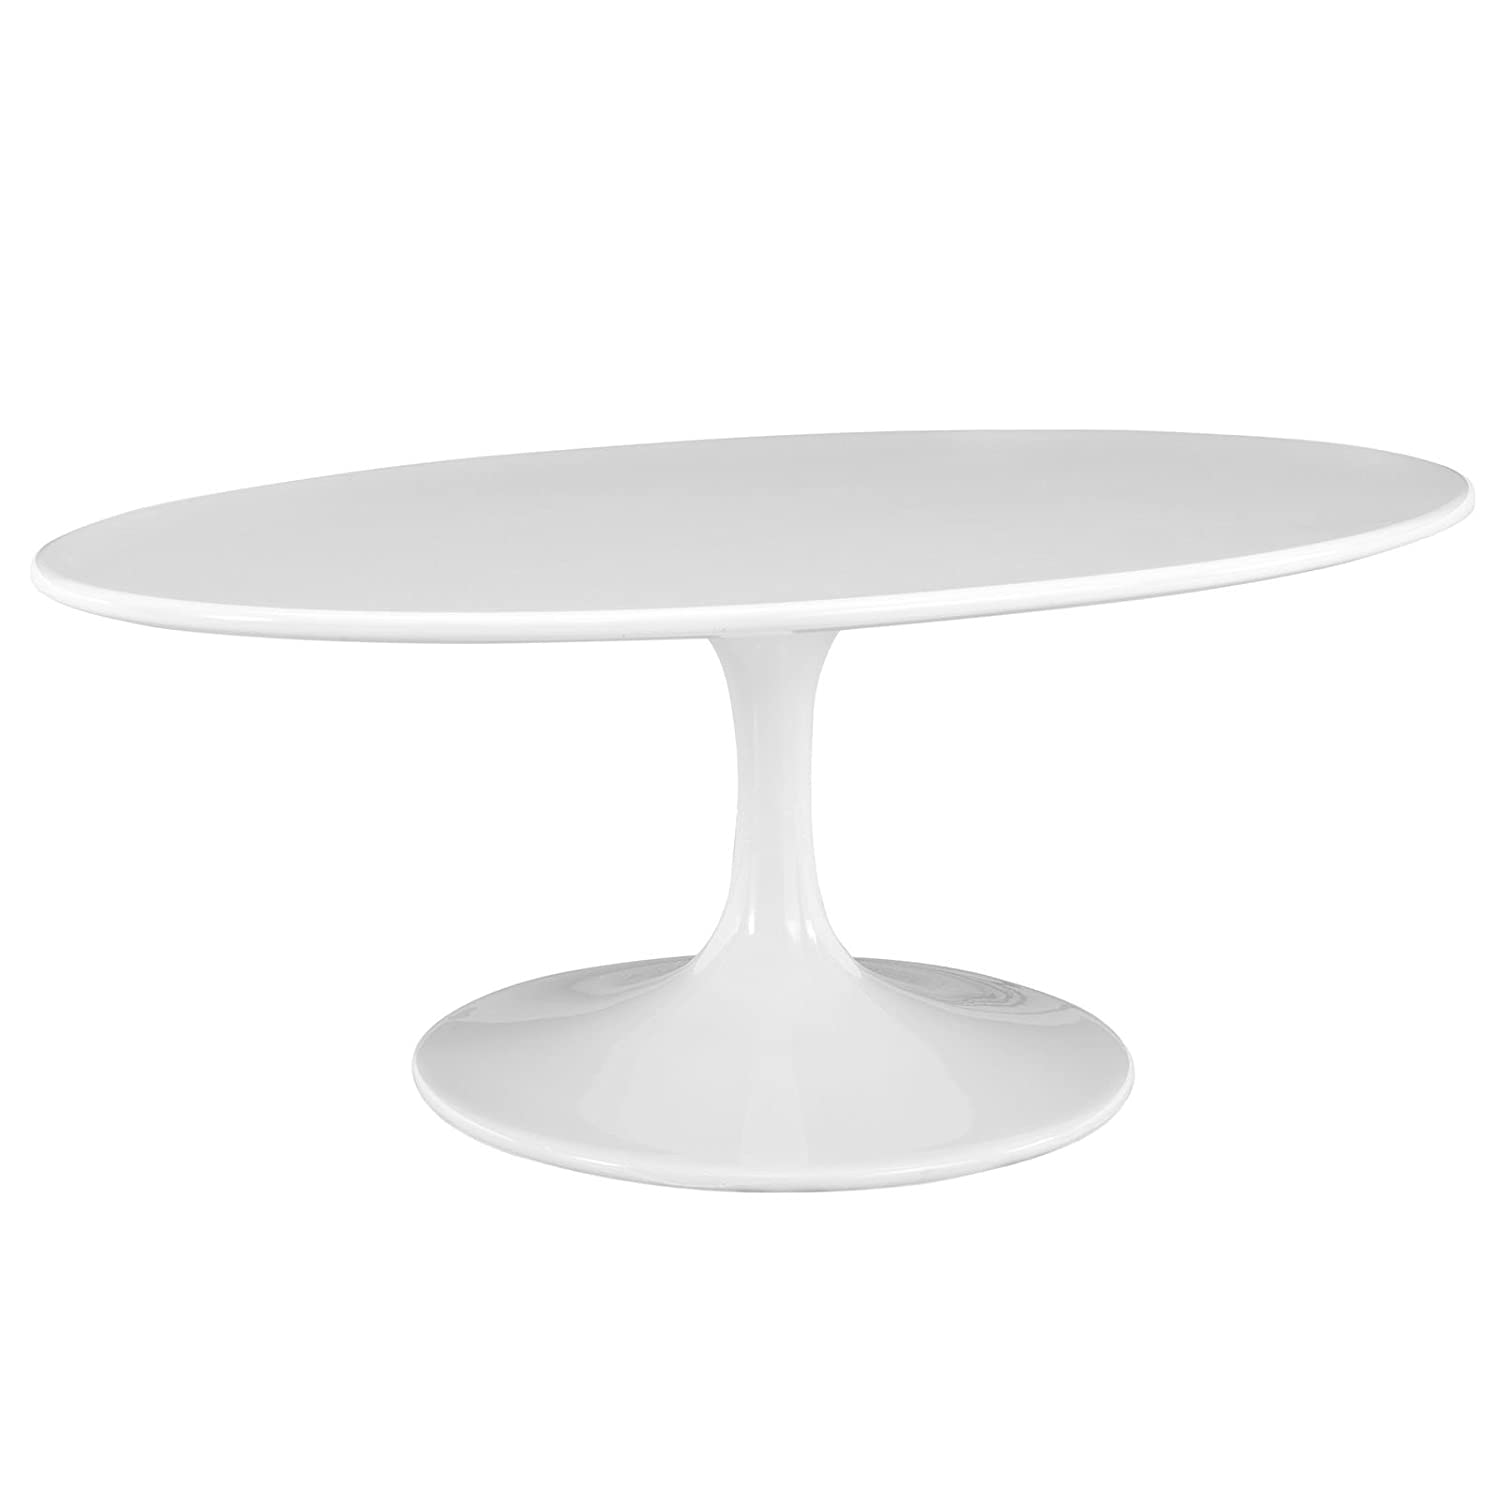 Oval Shaped Coffee Table Rascalartsnyc